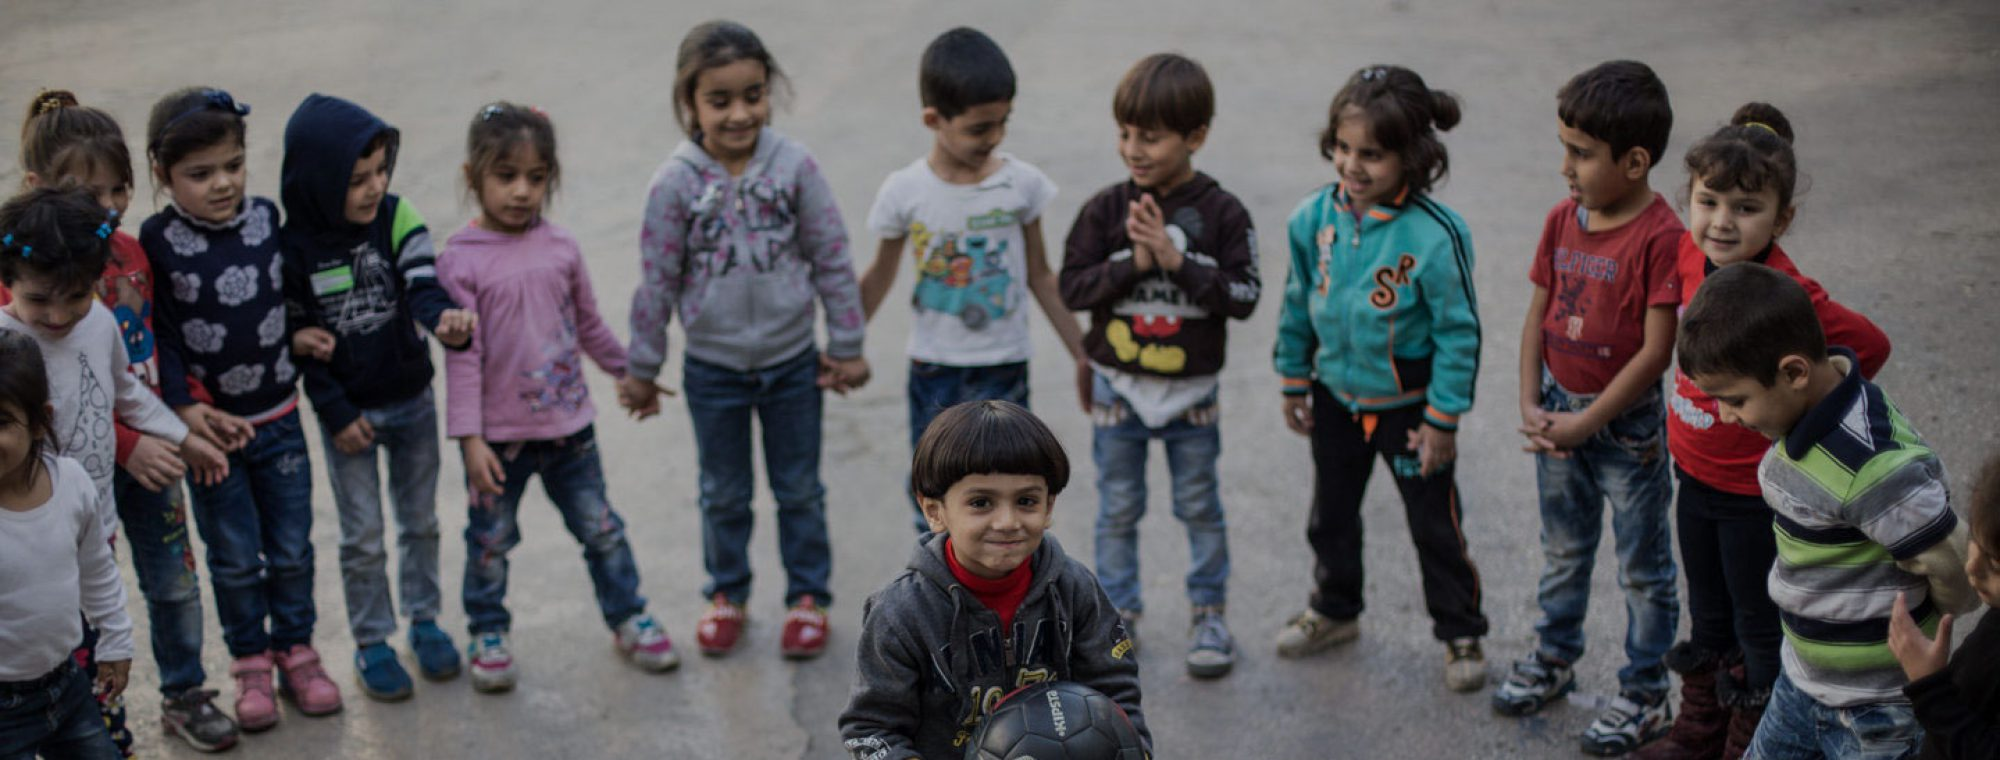 Refugee children playing at a JRS school in Lebanon. (Kristof Holvenyi/Jesuit Refugee Service)